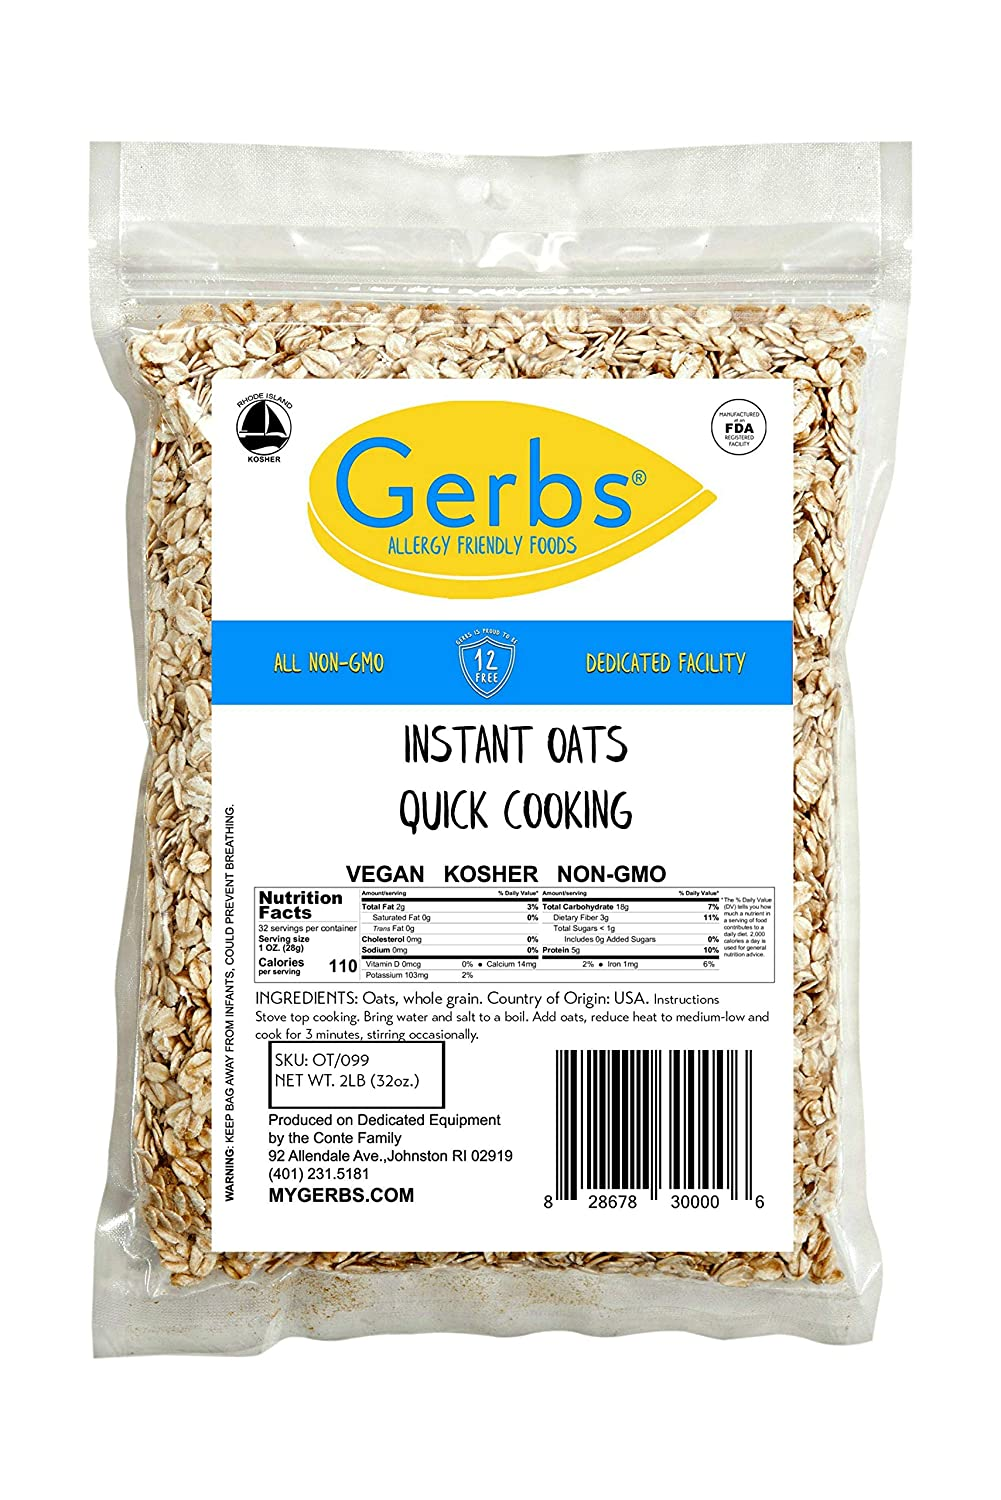 GERBS Instant Oats, 32 ounce Bag, Top 14 Food Allergy Free, Non GMO, Pesticide Free, Keto, Paleo Friendly